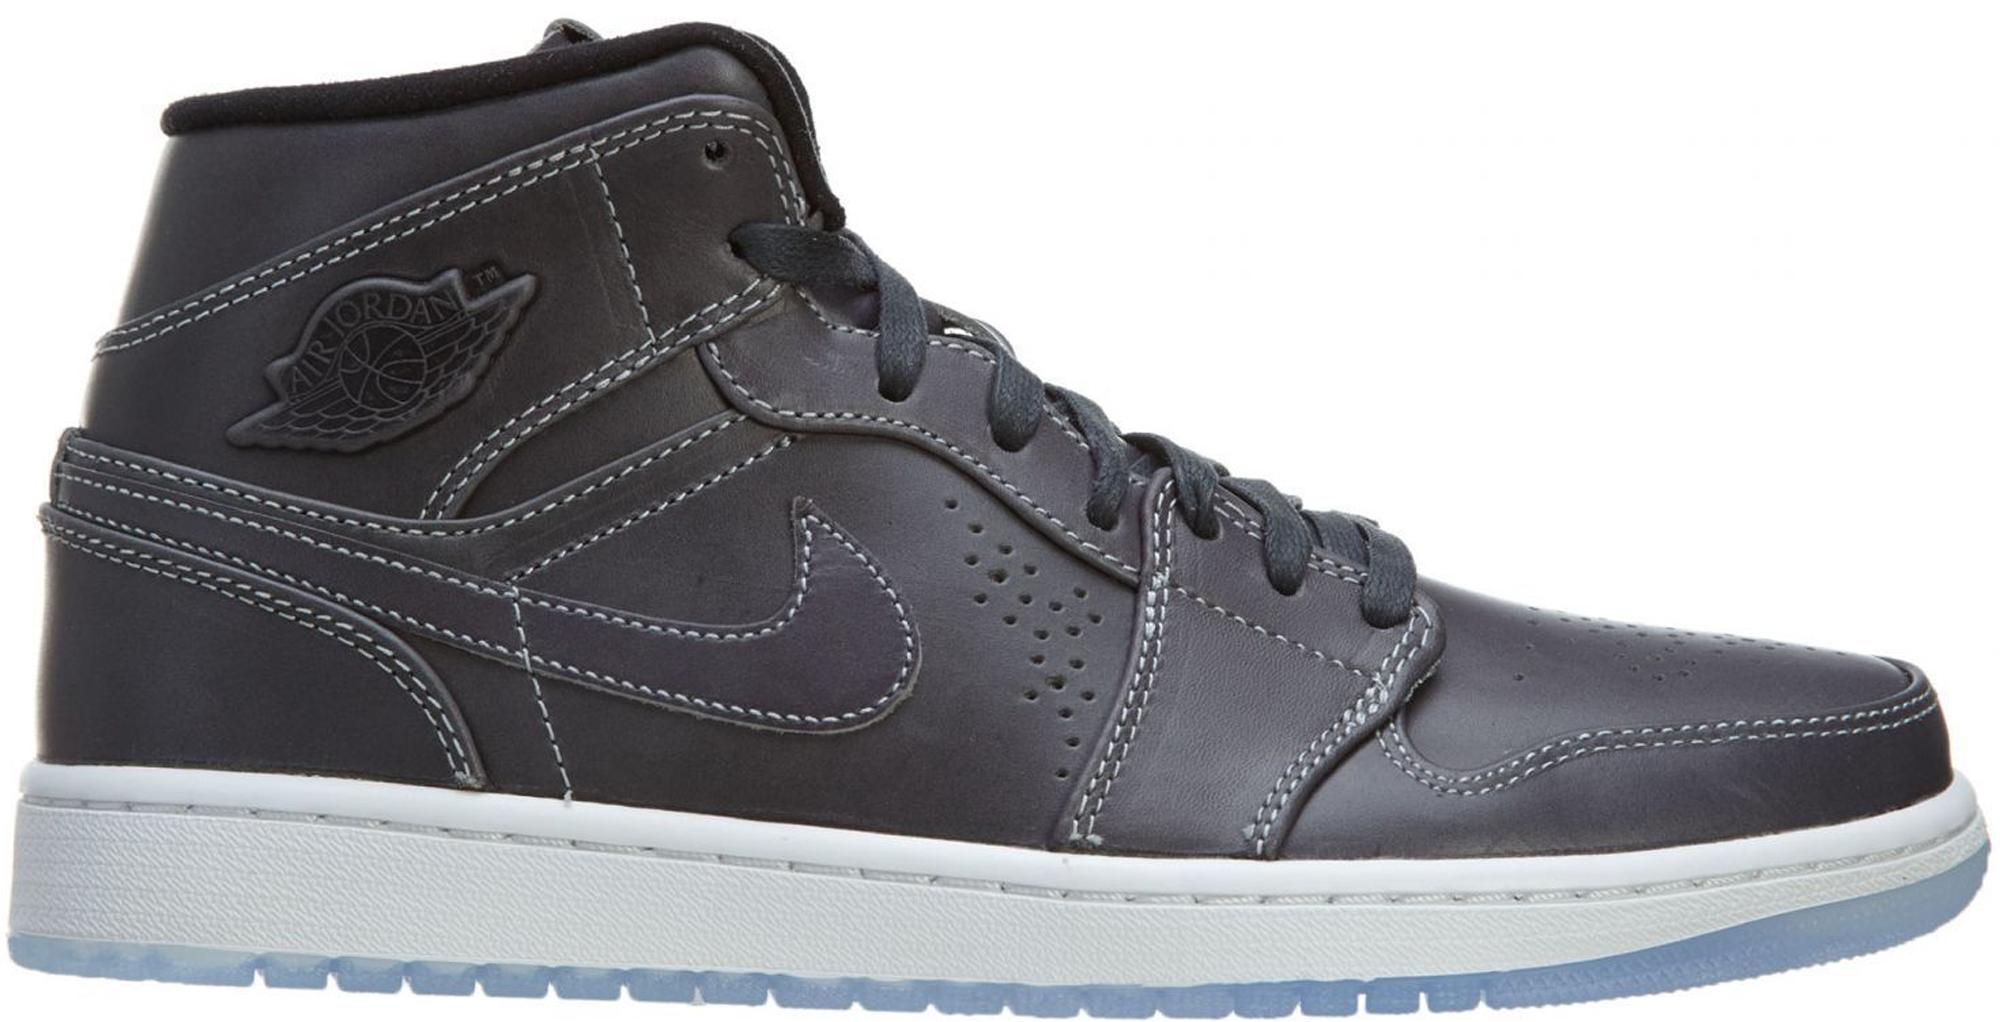 33c6b8f2 Nike 1 Mid Nouveau Wolf Grey in Gray for Men - Lyst